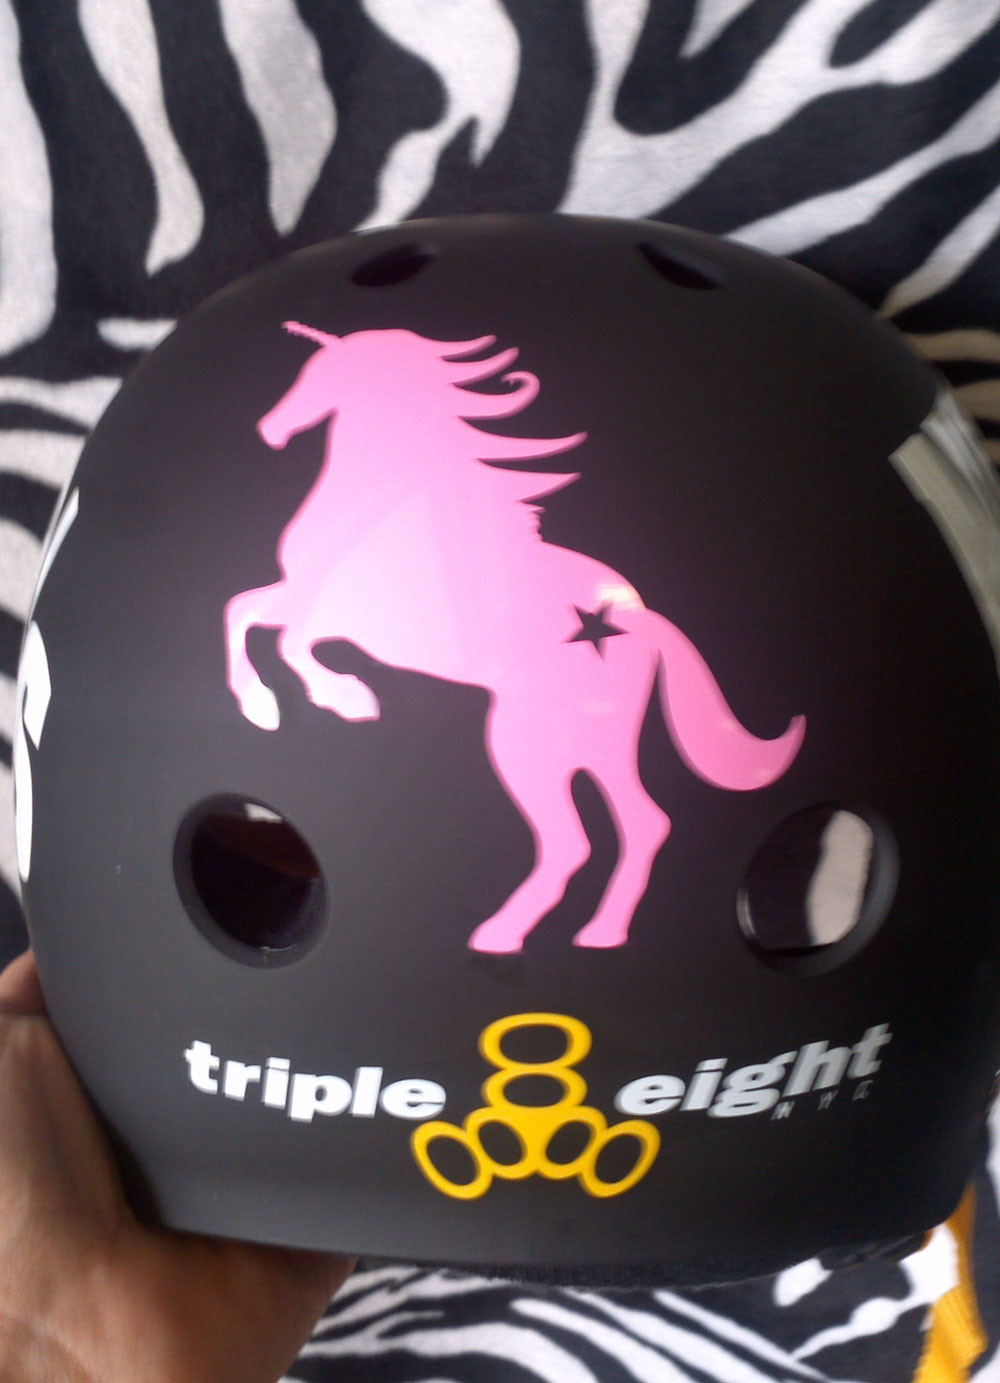 Unicorn Sticker Decal For Car Helmet Stitched Up Stickers